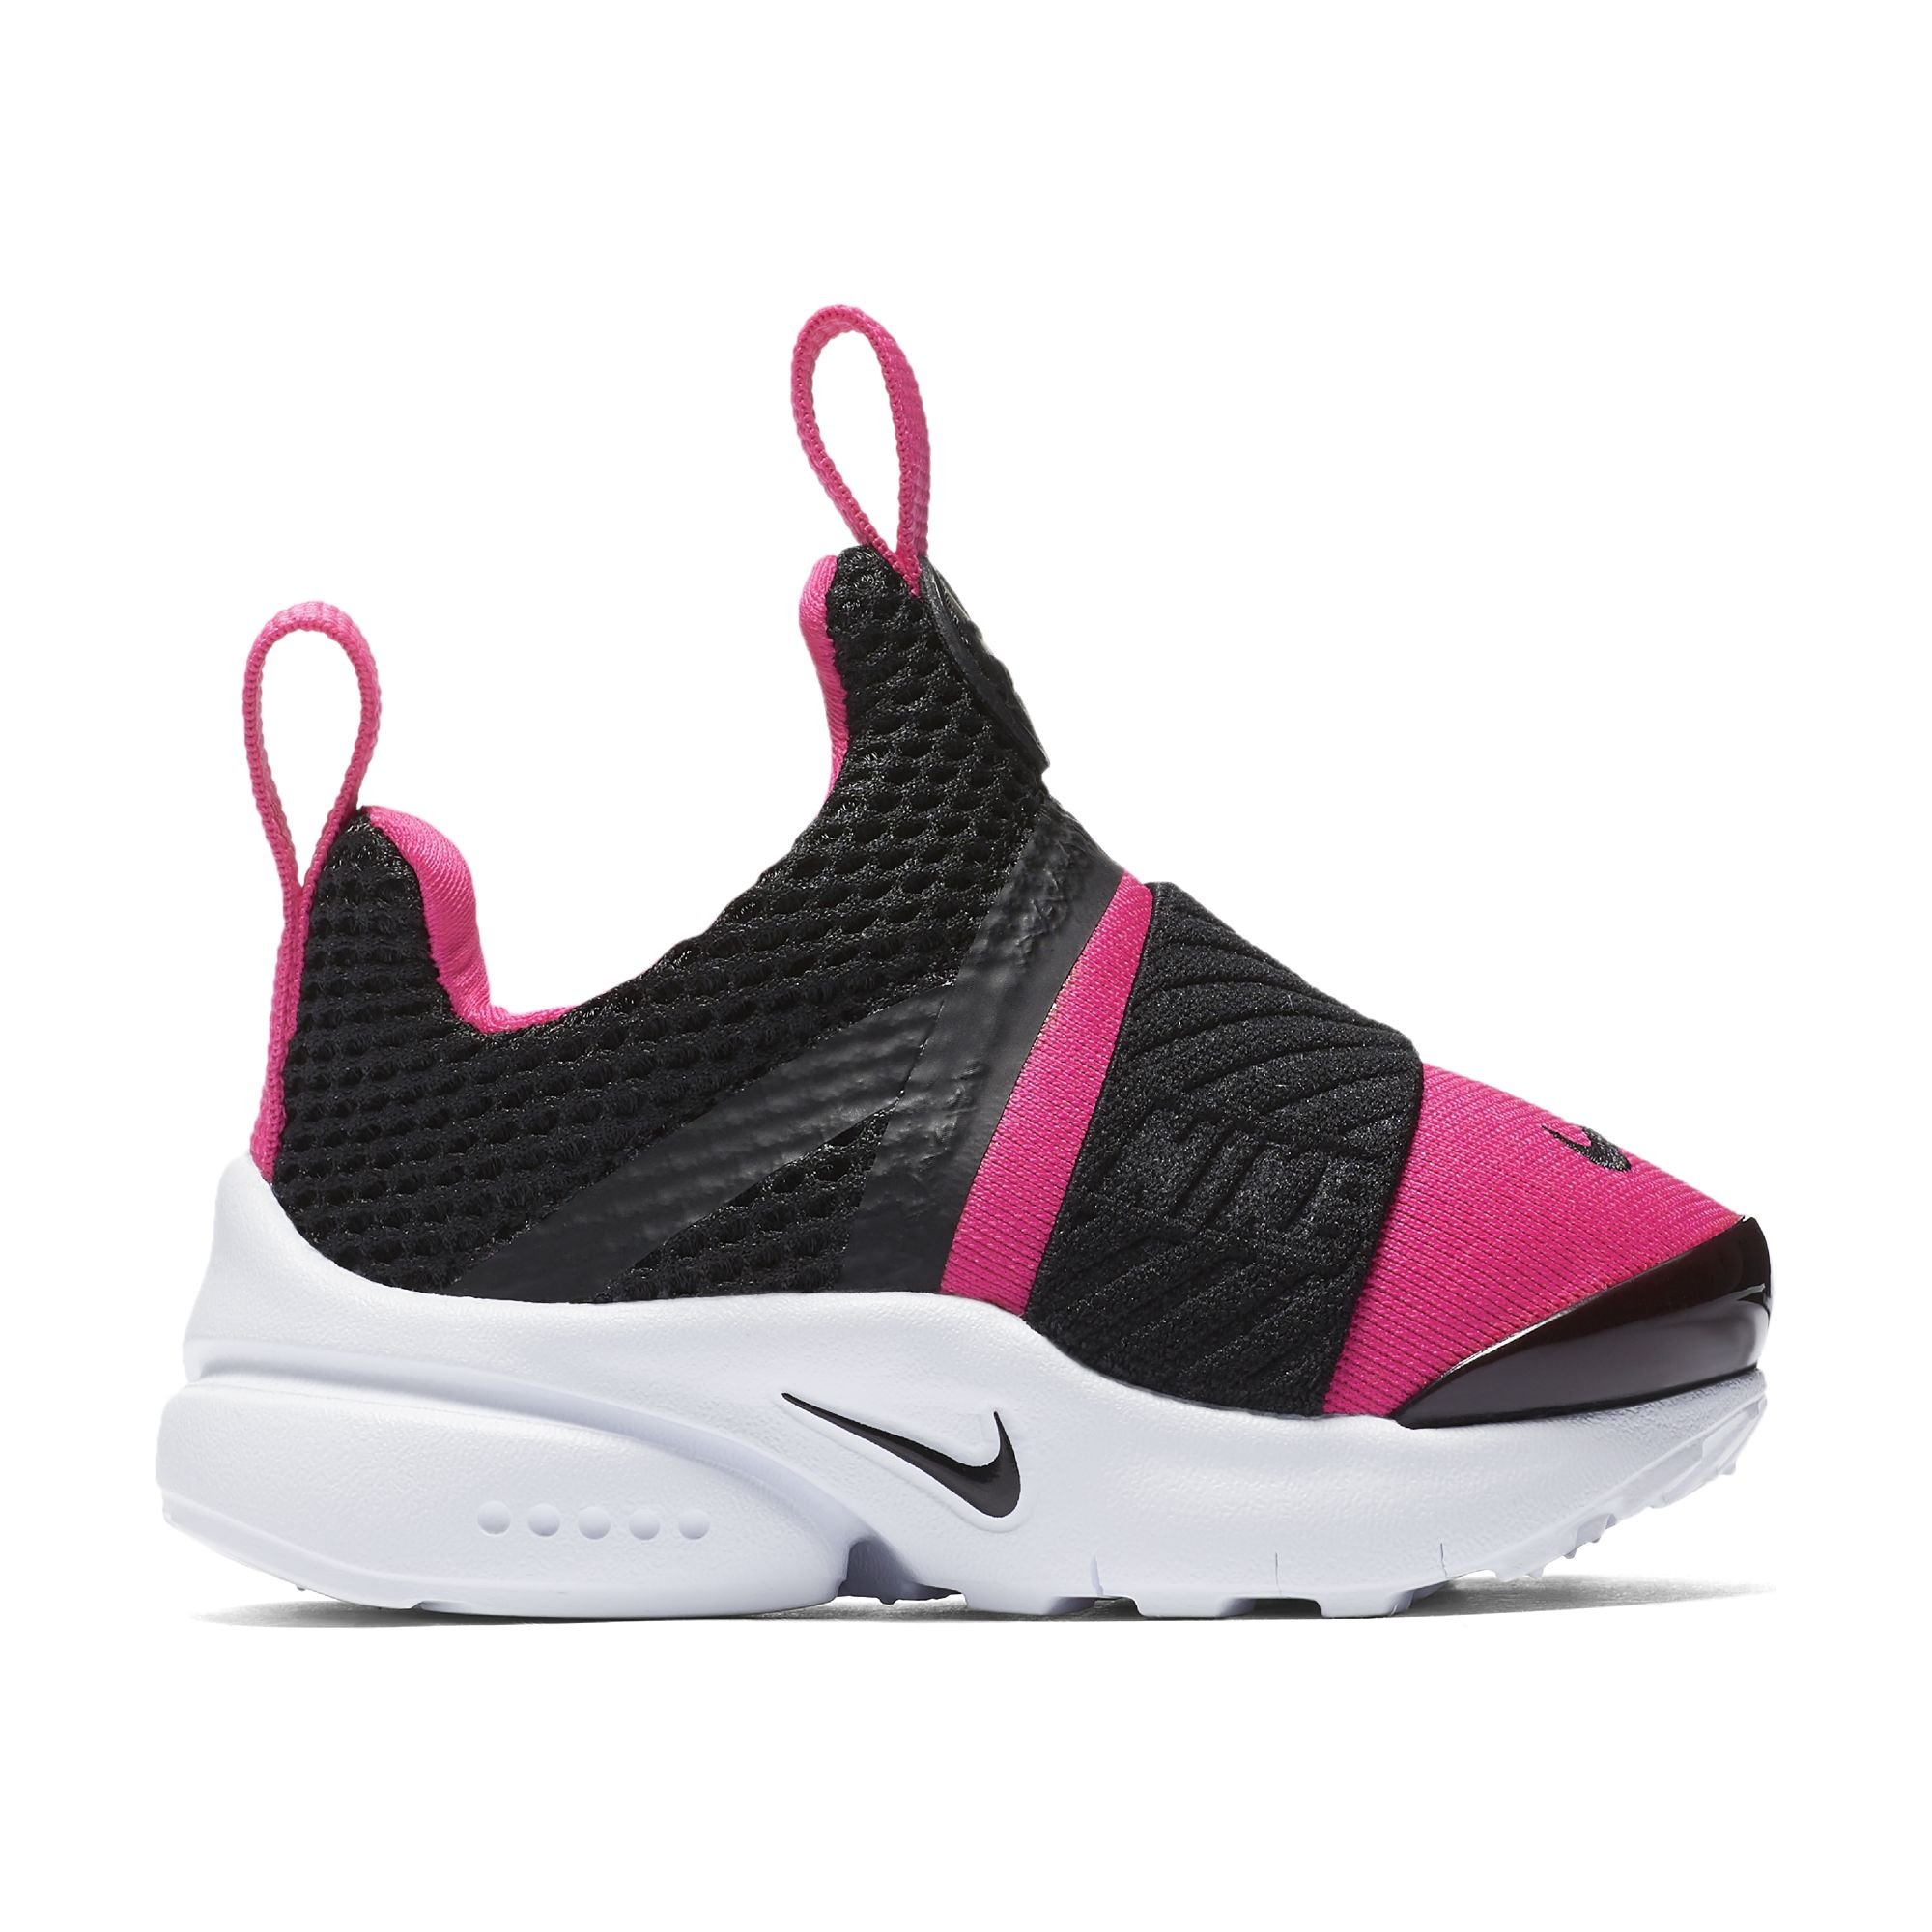 8a018a3508d5 Galleon - NIKE Presto Extreme Toddlers  Shoes Black Black Pink Prime White  870021-004 (6 M US)